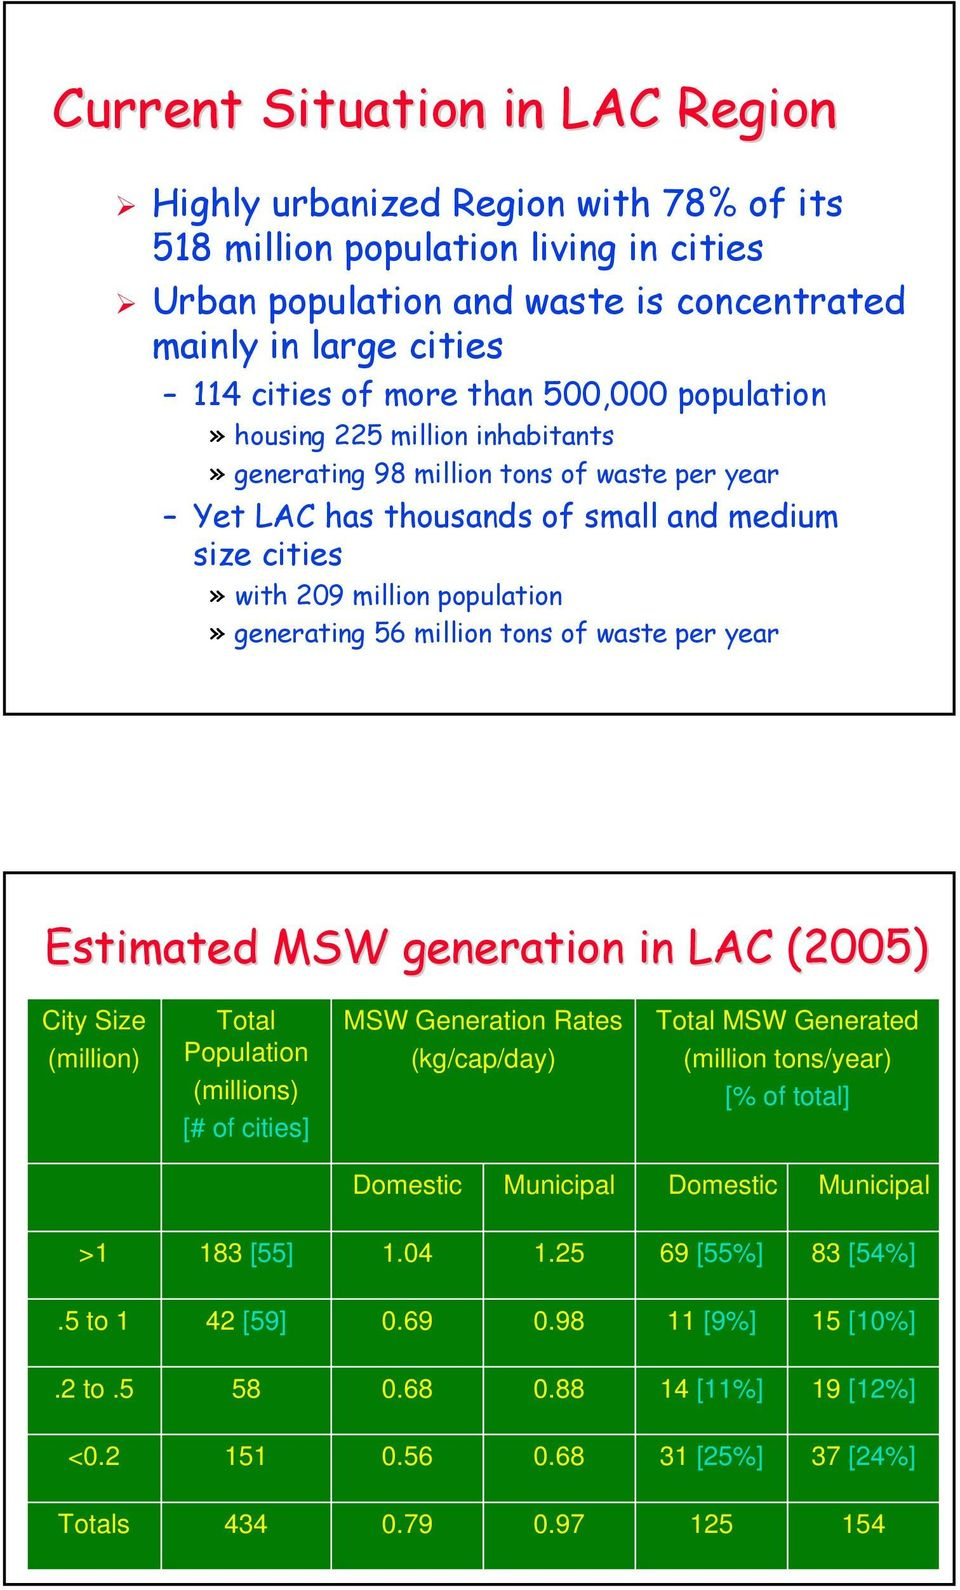 56 million tons of waste per year Estimated MSW generation in LAC (2005) City Size (million) Total Population (millions) [# of cities] MSW Generation Rates (kg/cap/day) Total MSW Generated (million